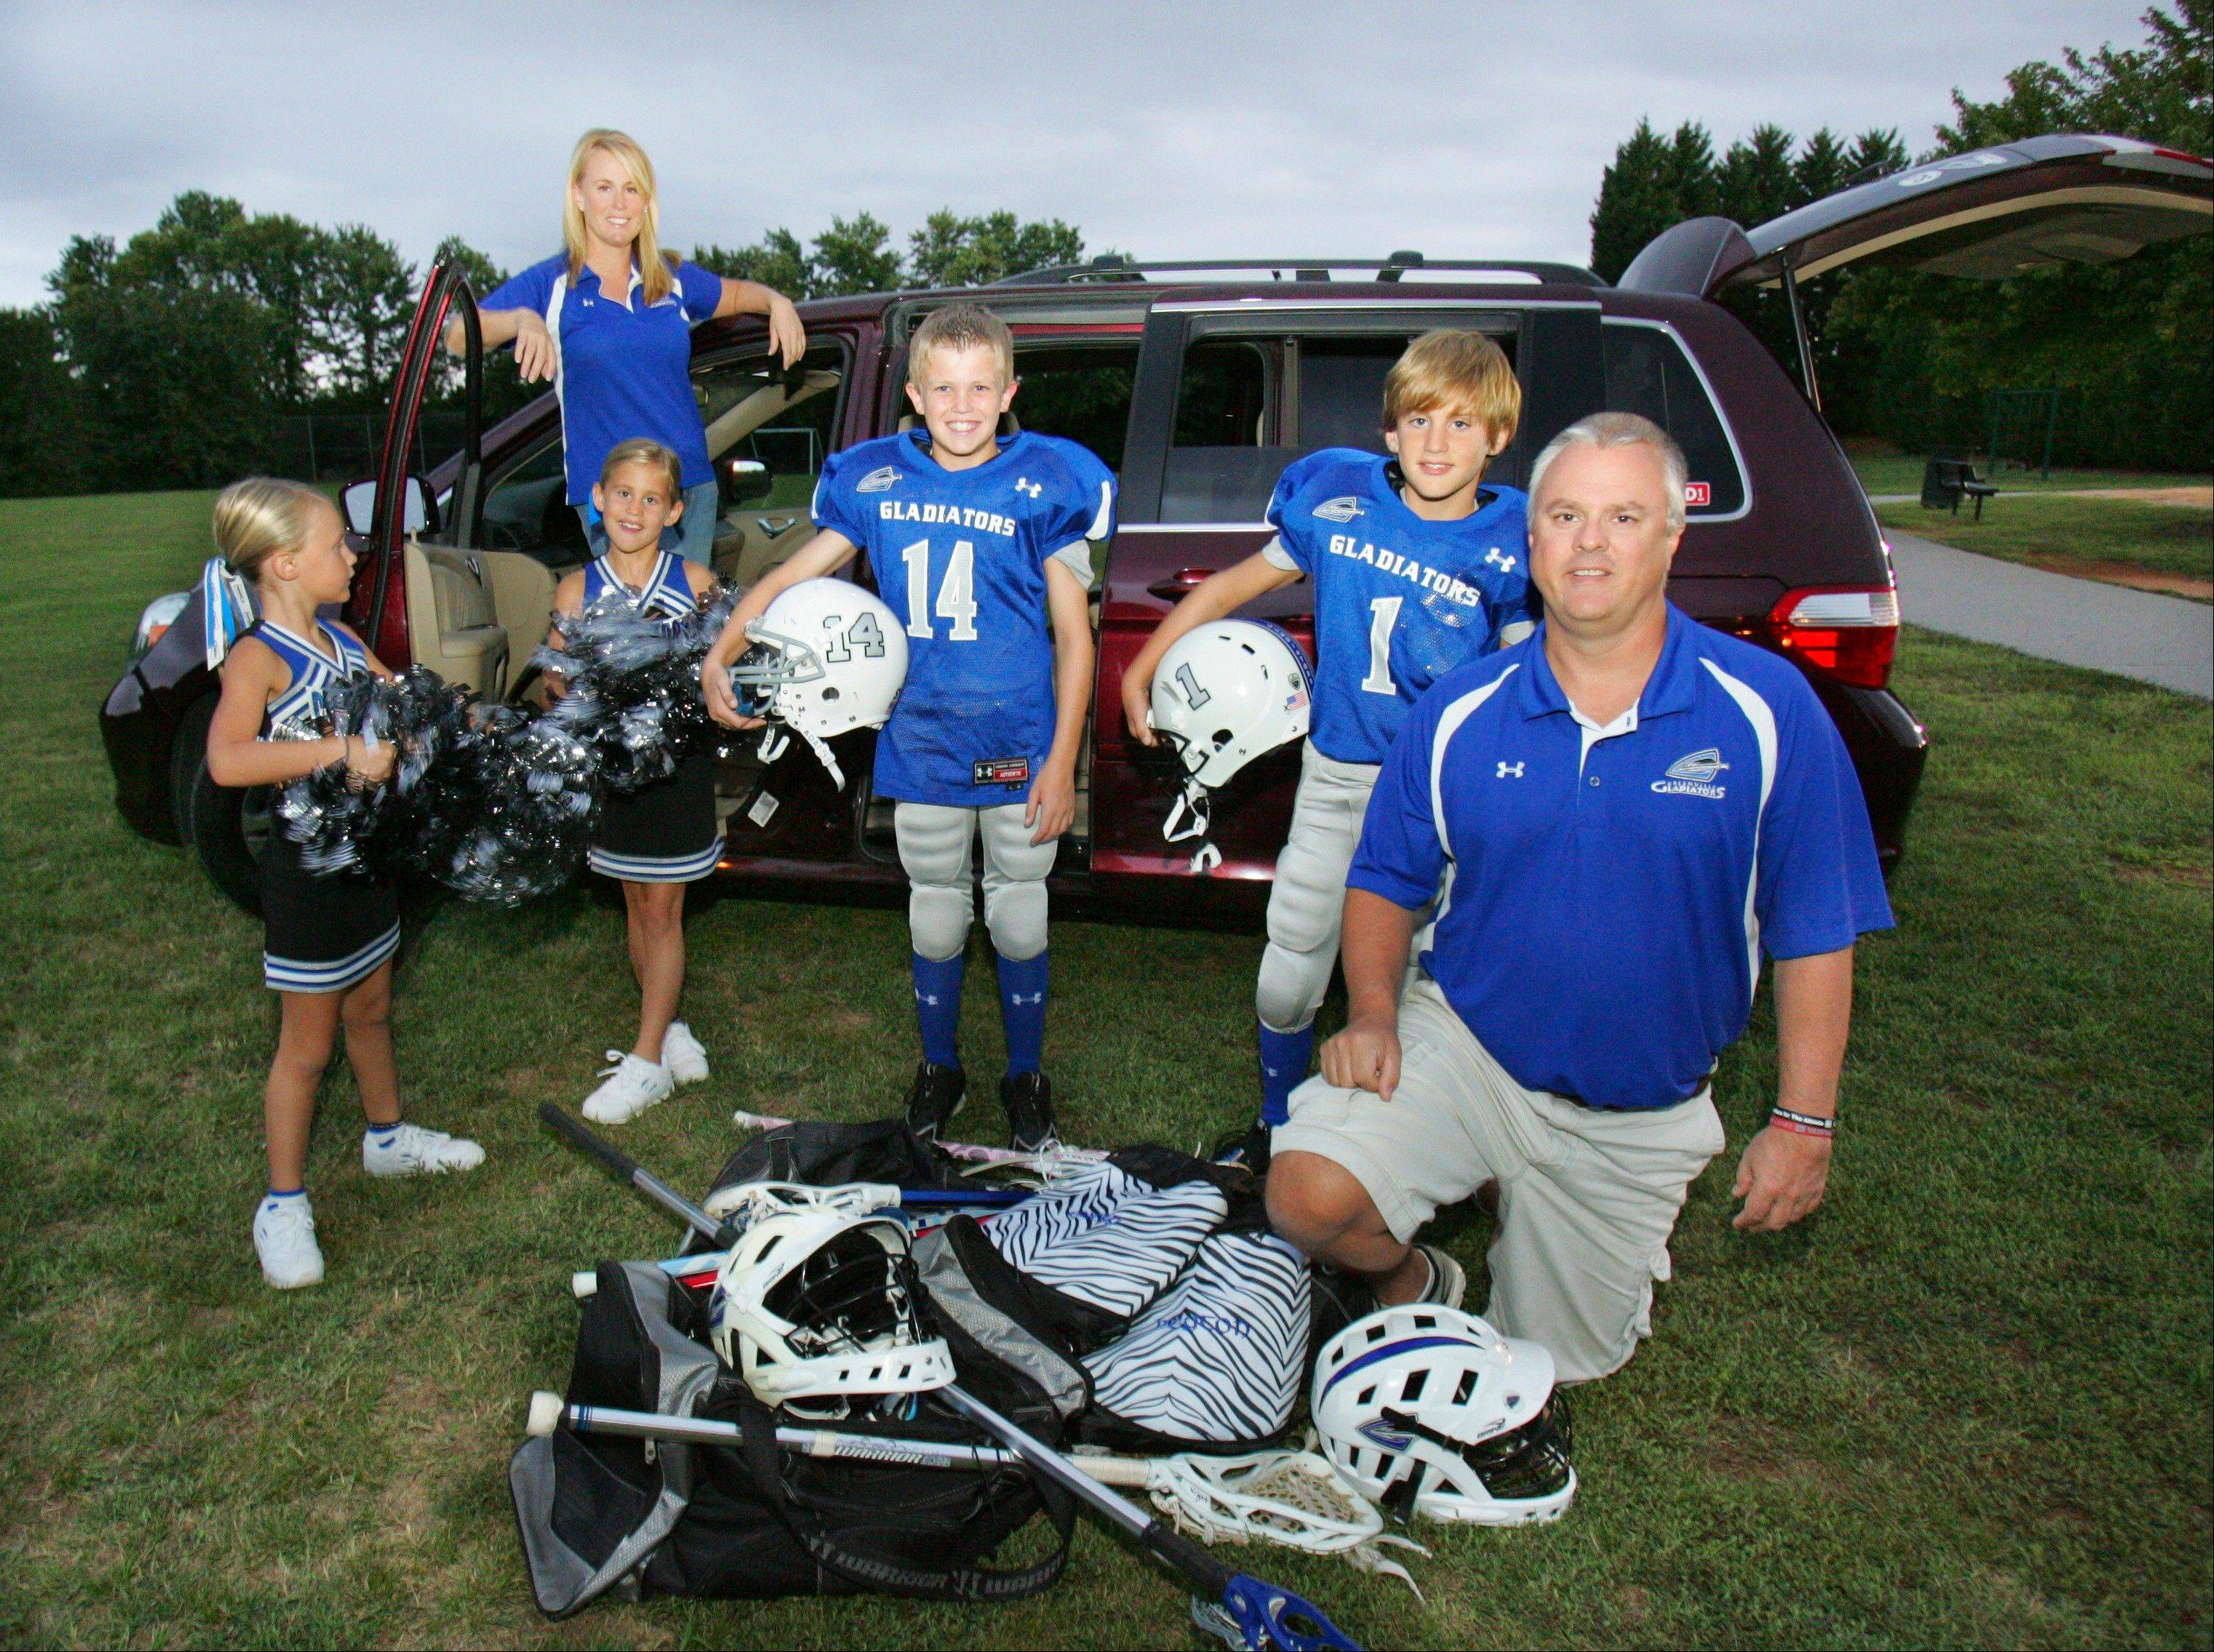 The Stevenson family uses aminivan to transport their children and friends to games in Greer, S.C. Front row, from left to right, are: Peyton Stevenson, 6; Emery Stevenson, 8; family friend Charlie Wright, 10; Cooper Stevenson, 10; and Bill Stevenson. Back row is Allison Stevenson. With three kids who need to get to soccer, lacrosse, football, cheer and swim team — not to mention school — Allison Stevenson says her eight-seater minivan is crucial for carpooling.